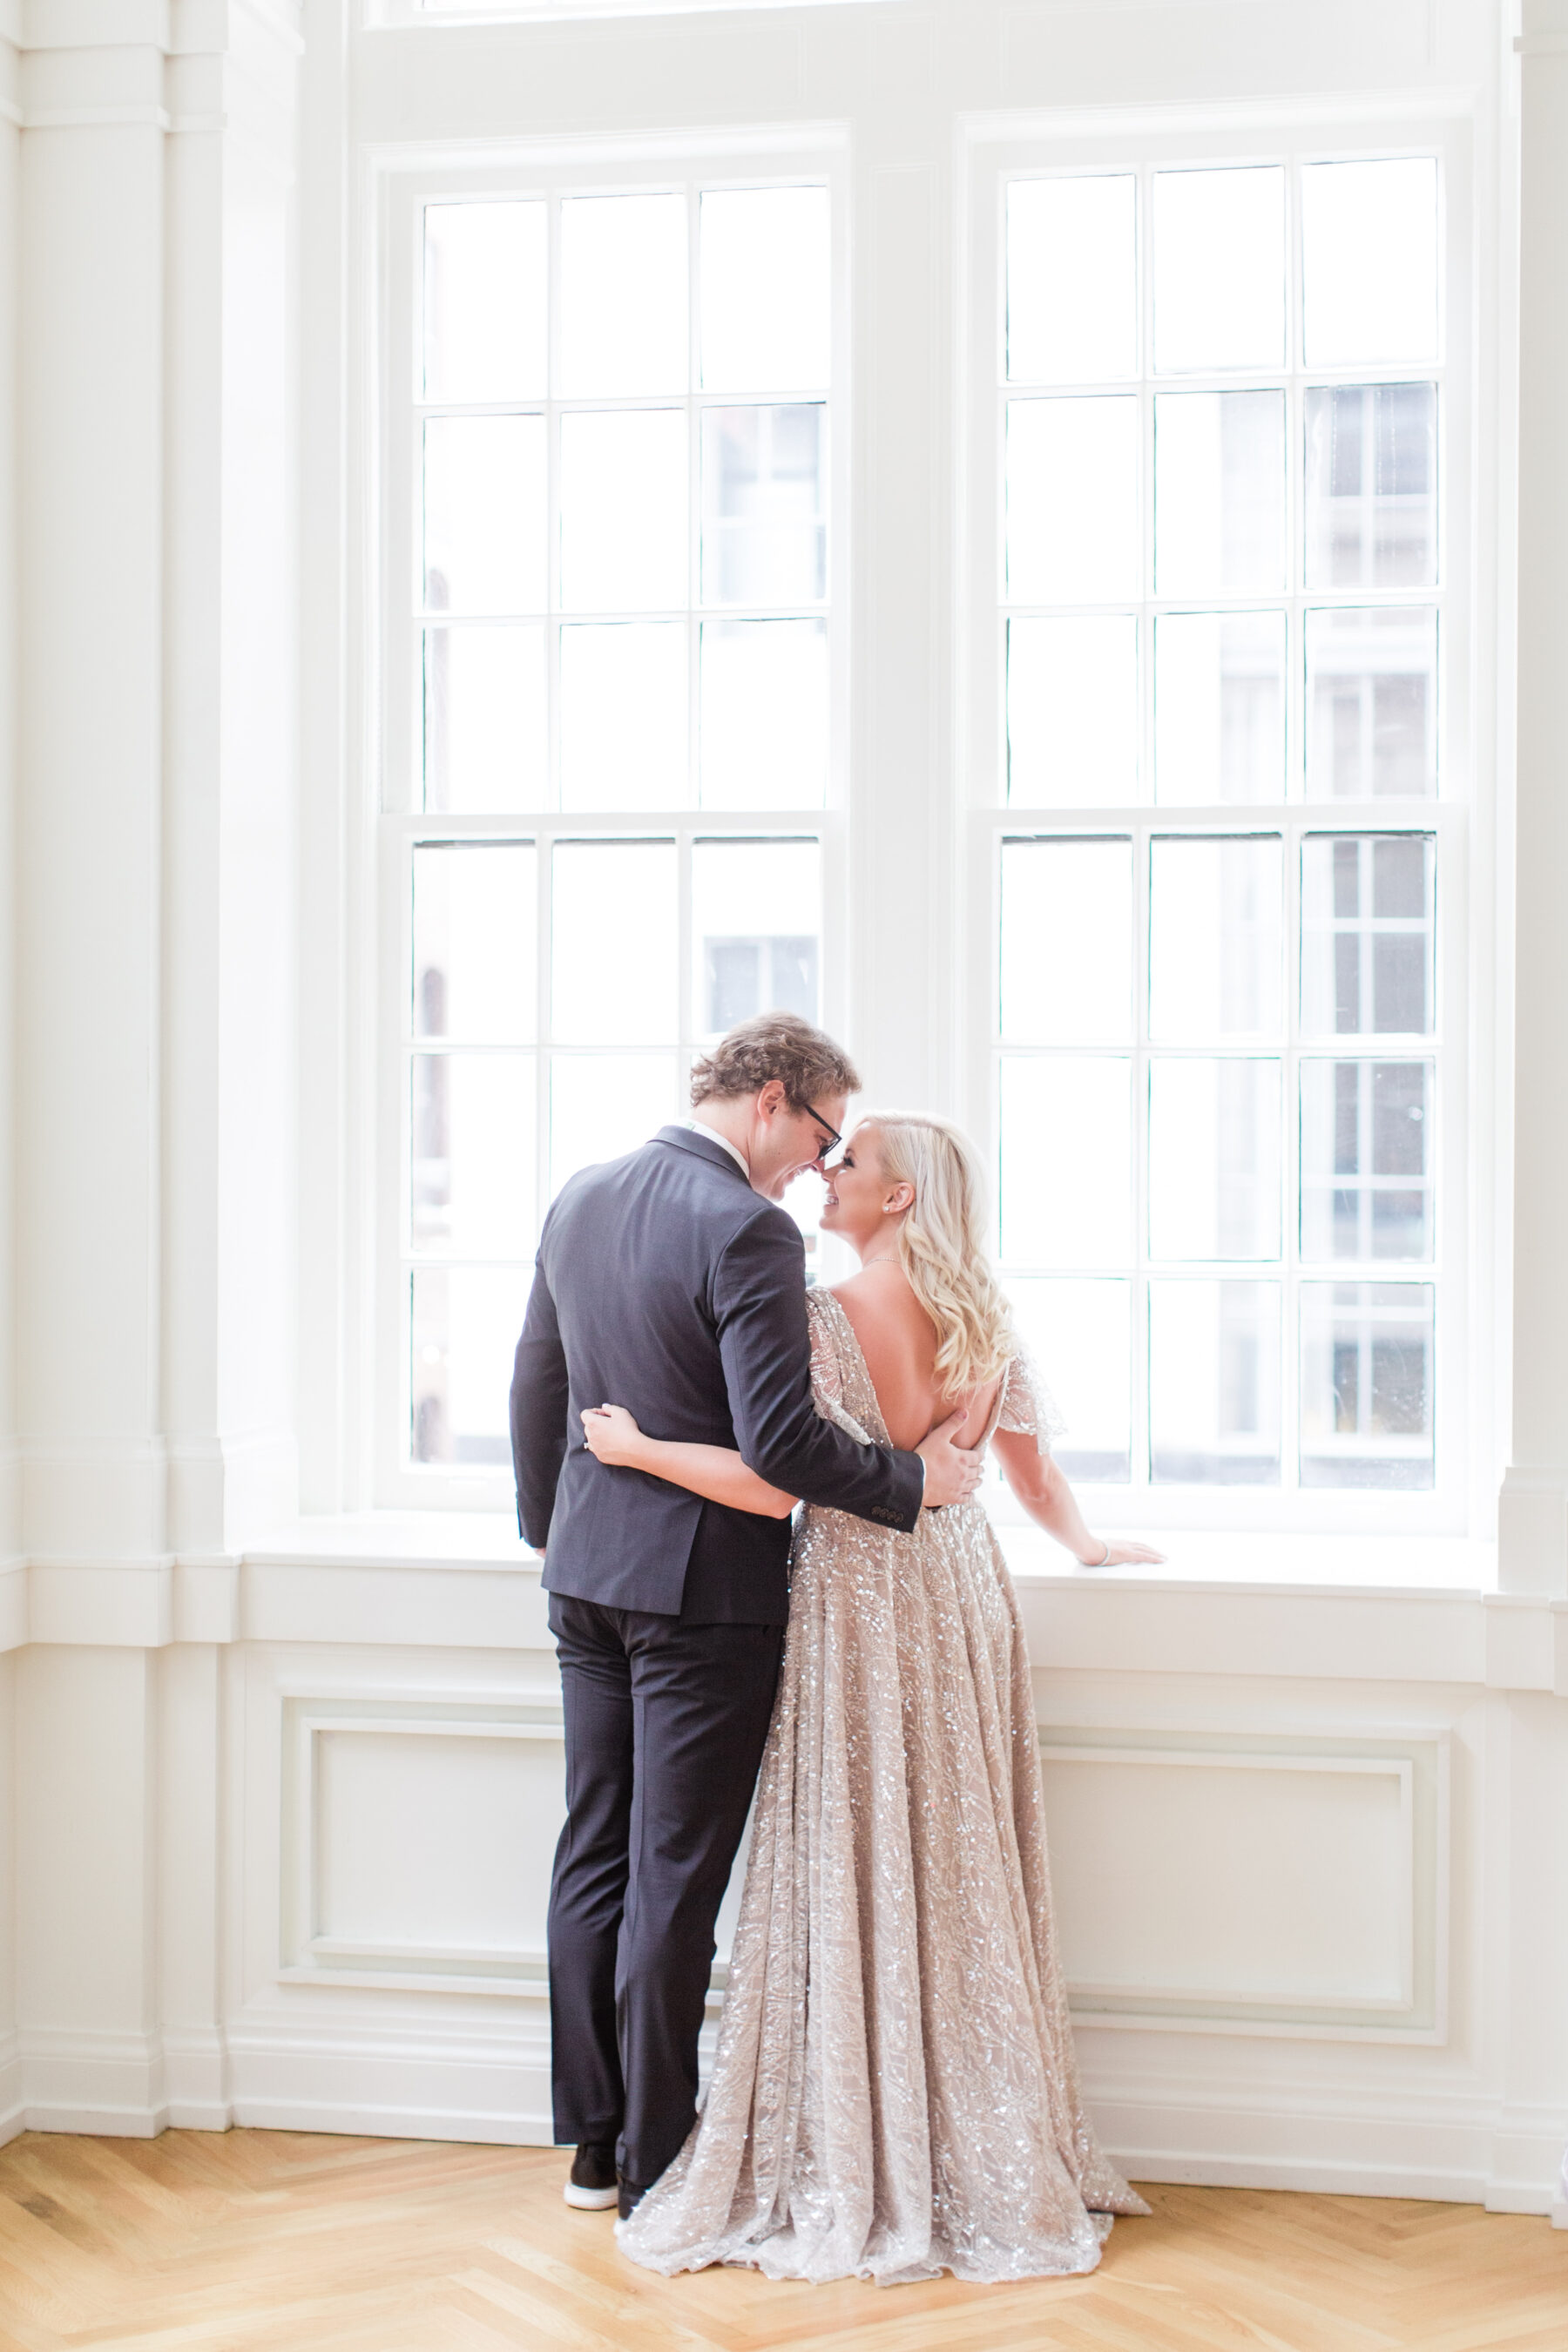 Wedding first look inspiration: Classic, Yet Modern New Years Eve Wedding Inspiration featured on Nashville Bride Guide